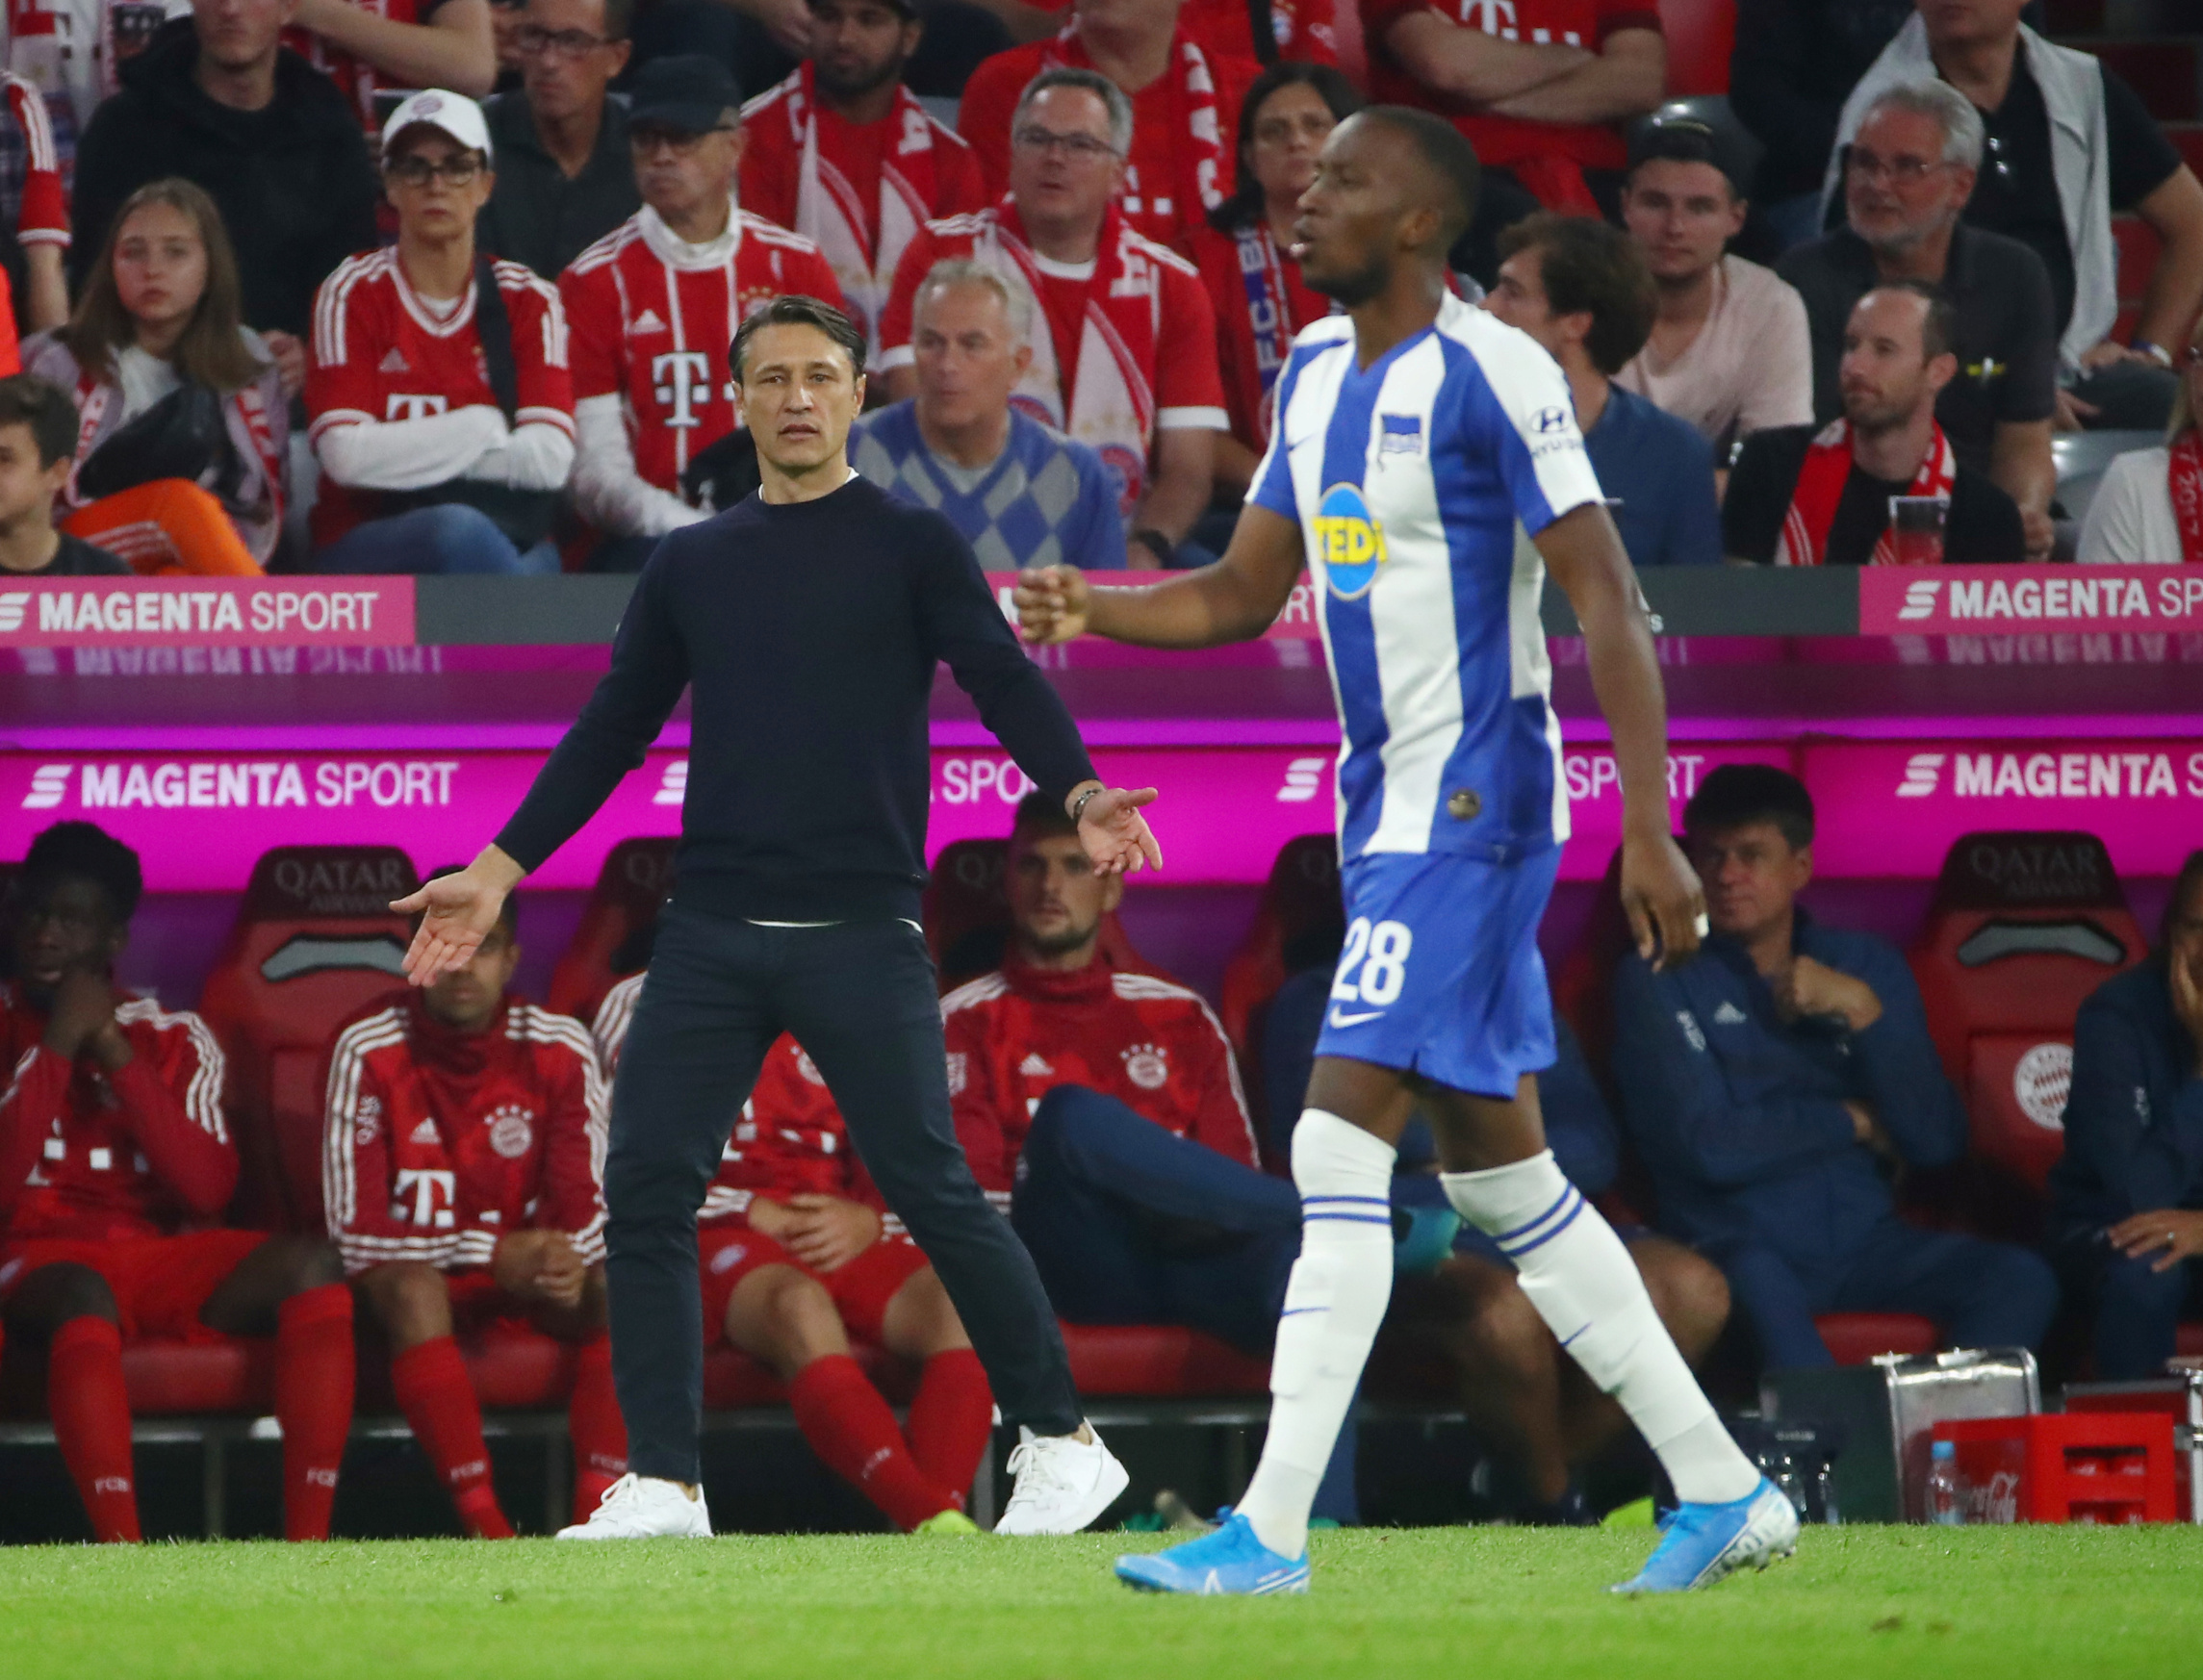 Soccer Football - Bundesliga - Bayern Munich v Hertha BSC - Allianz Arena, Munich, Germany - August 16, 2019   Bayern Munich coach Niko Kovac reacts                REUTERS/Michael Dalder    DFL regulations prohibit any use of photographs as image sequences and/or quasi-video - RC129EEC75B0